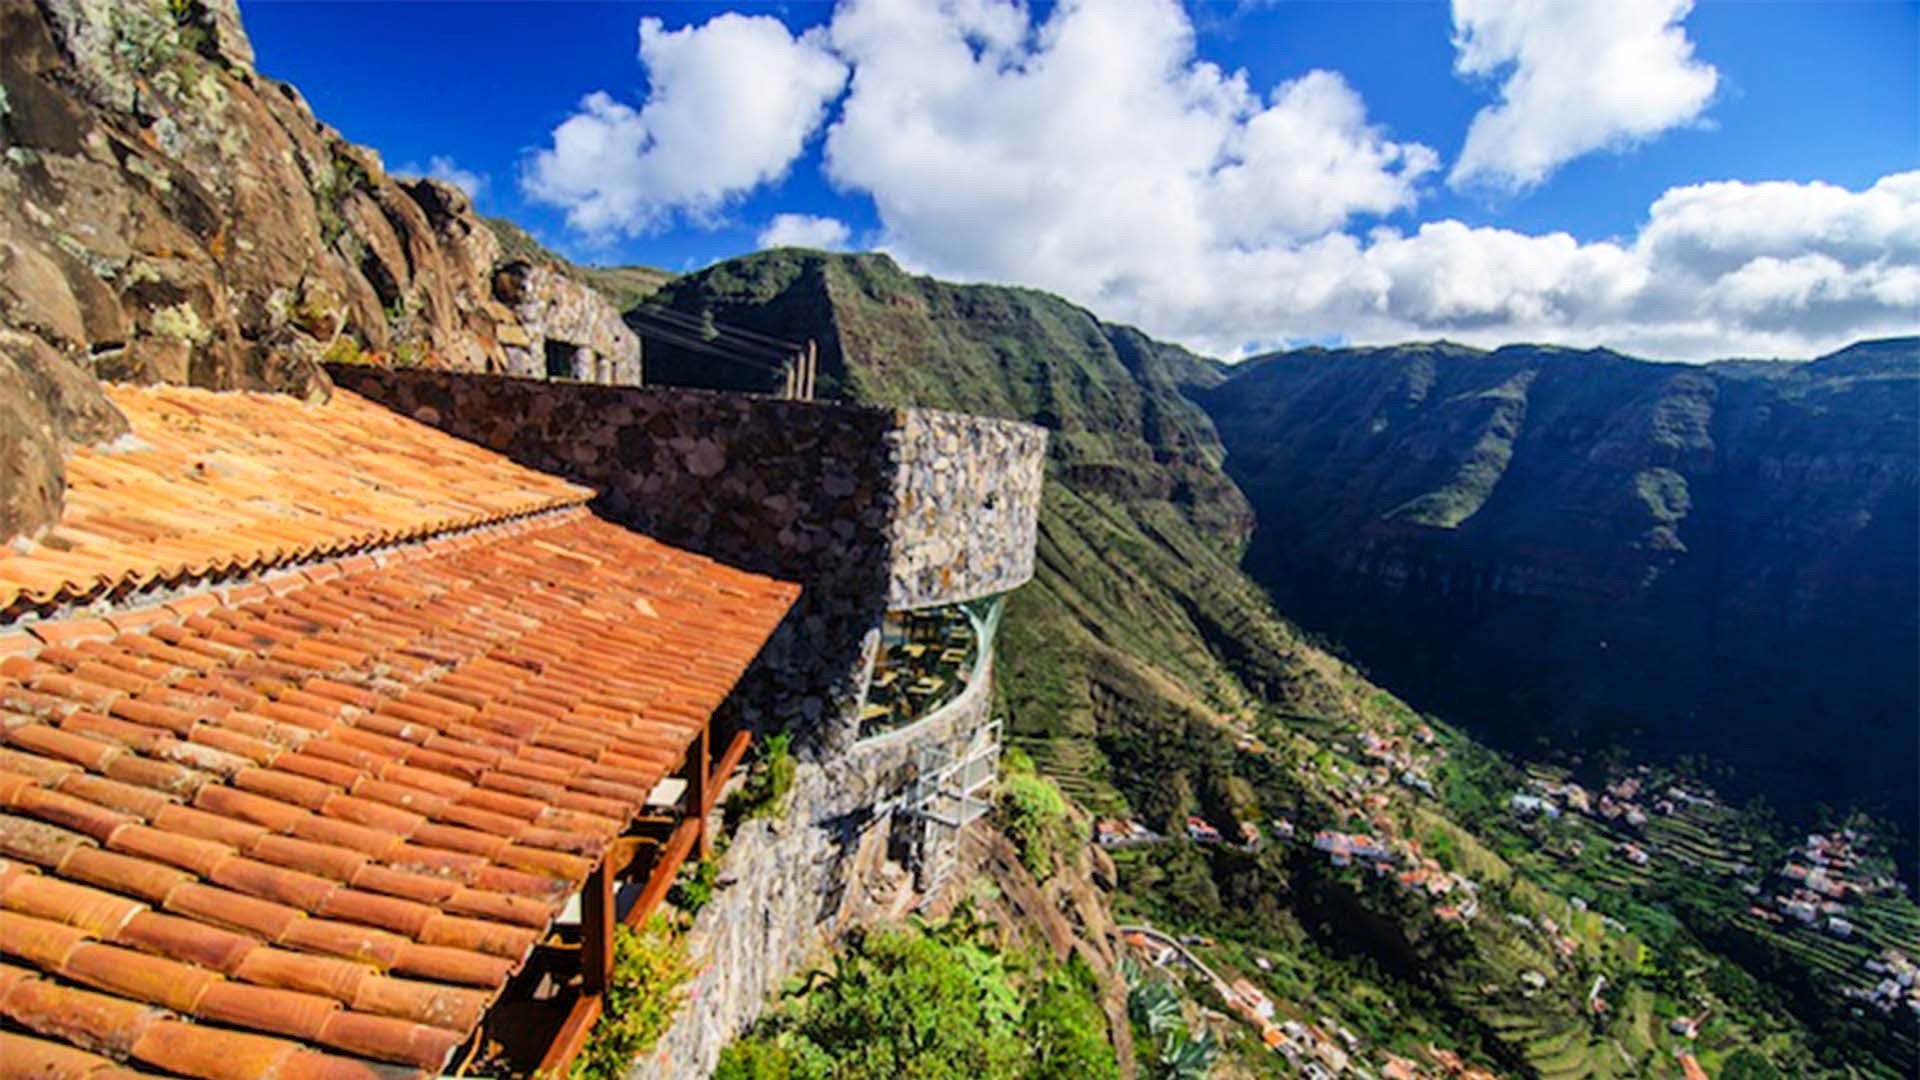 View from Mirador del Palmarejo in western La Gomera, Canary Islands